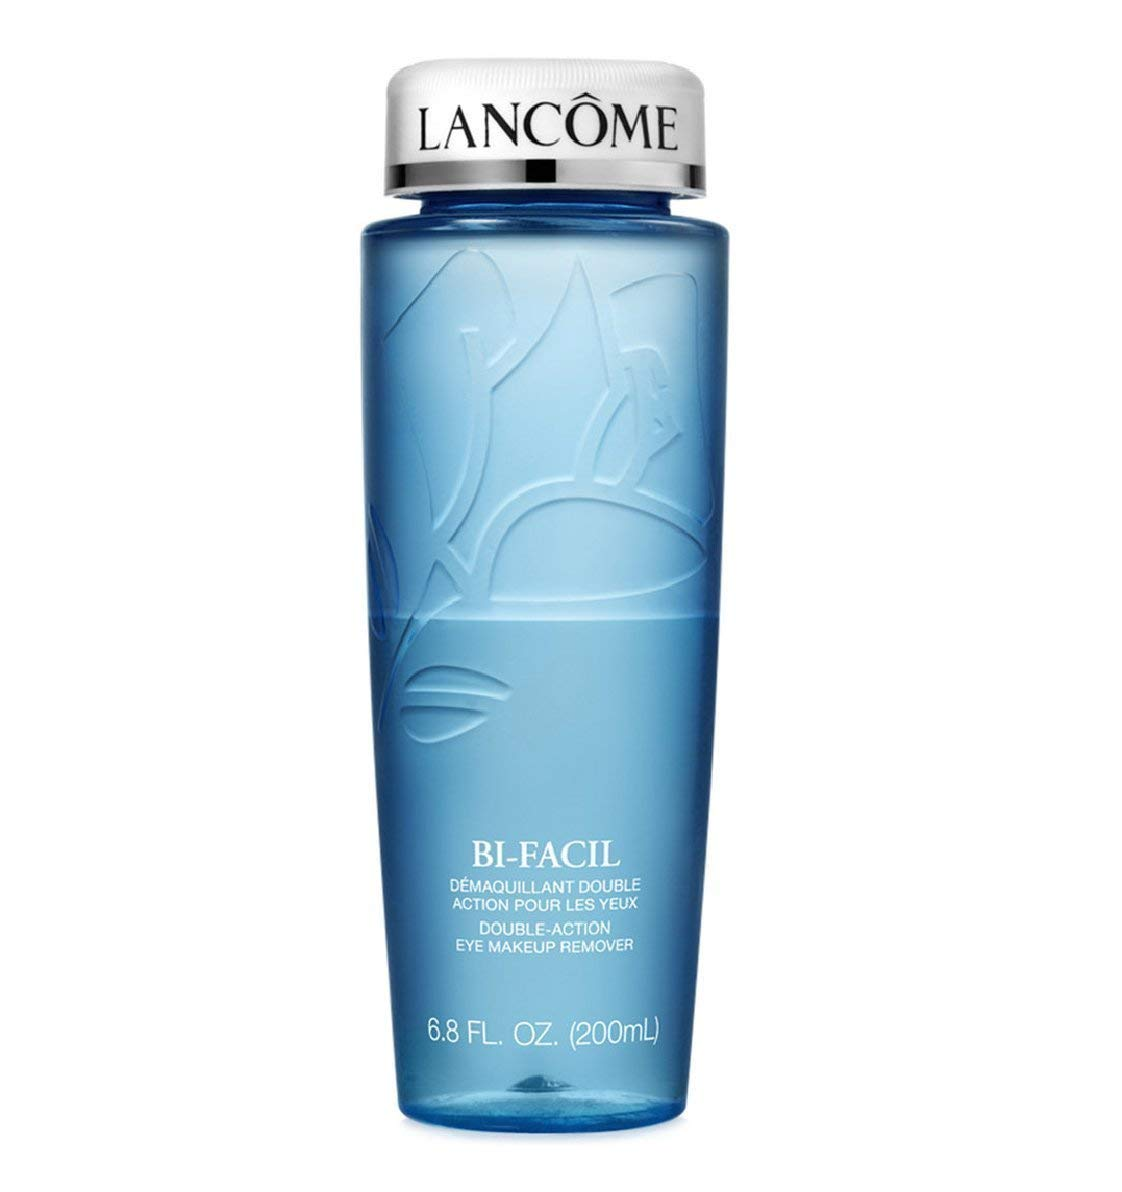 Lancôme - Bi-Facil Double-Action Eye Makeup Remover